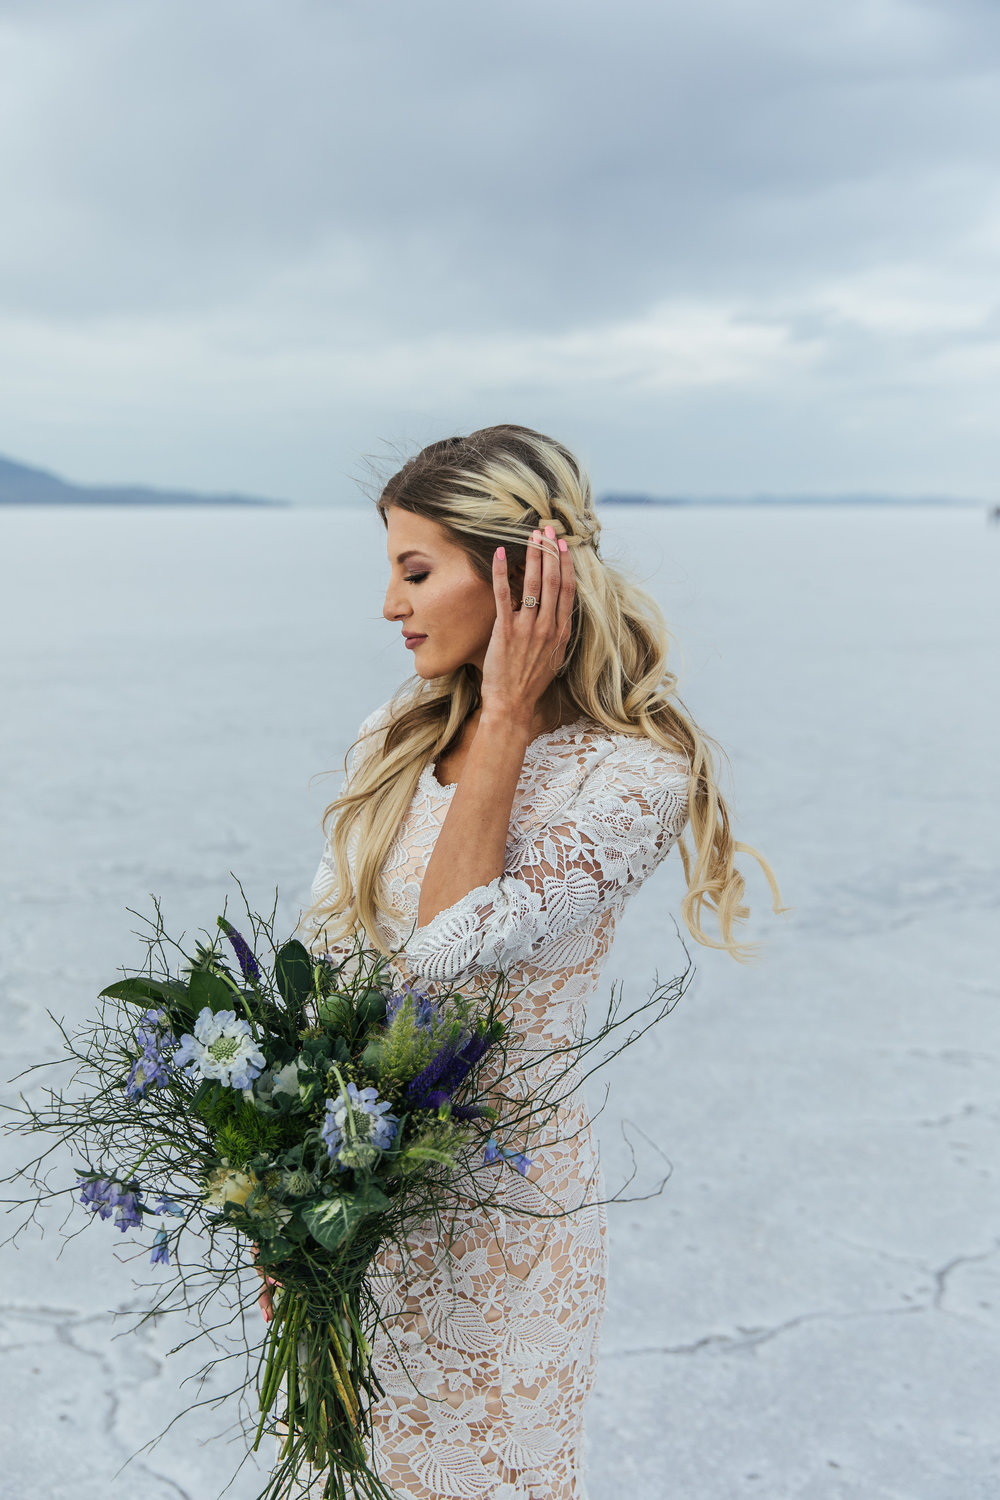 Bridal hair by Hailey Boam L Floral Studio Bouquet Elizabeth Cooper Design Dress Bonneville Salt Flats Bridals